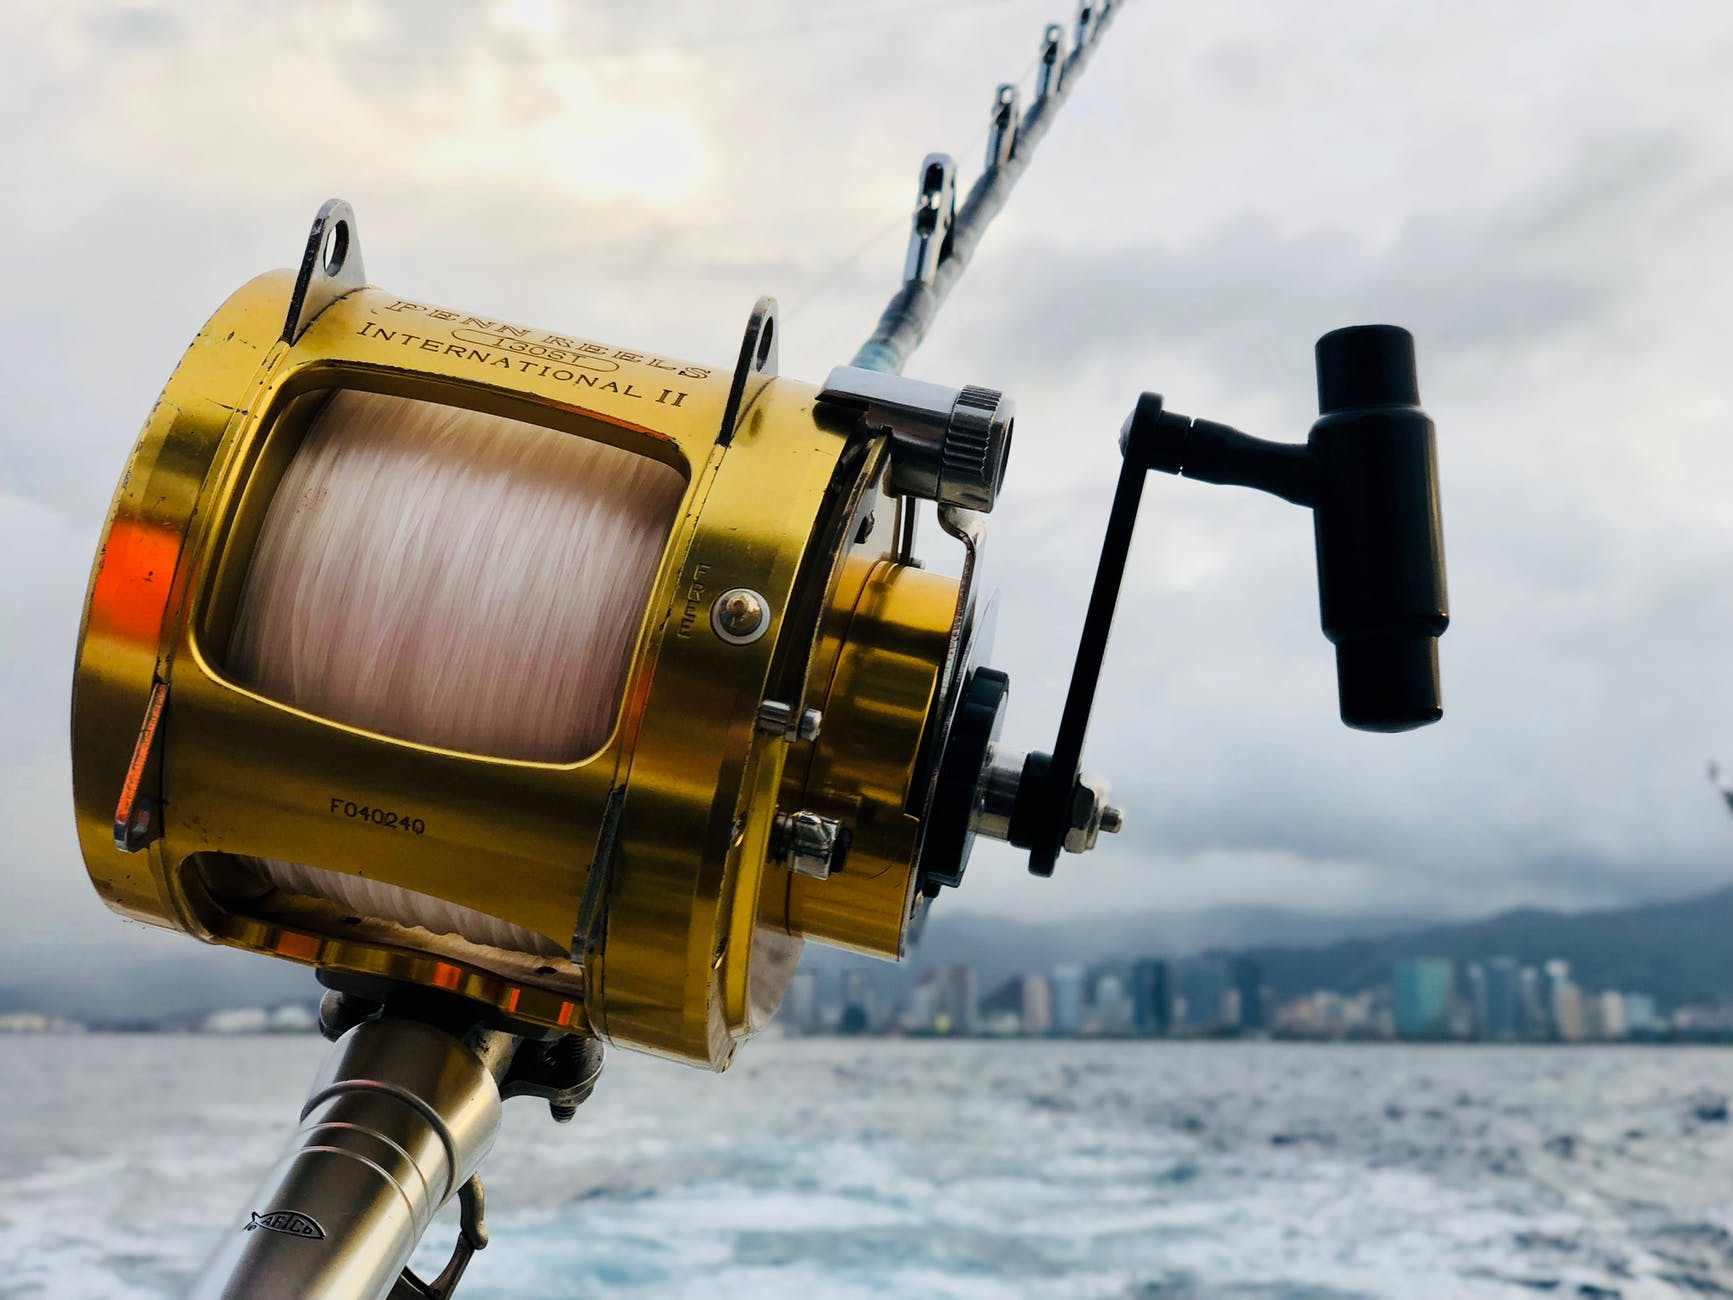 How to Tie Fishing Line to Reel: A Guide for Beginners